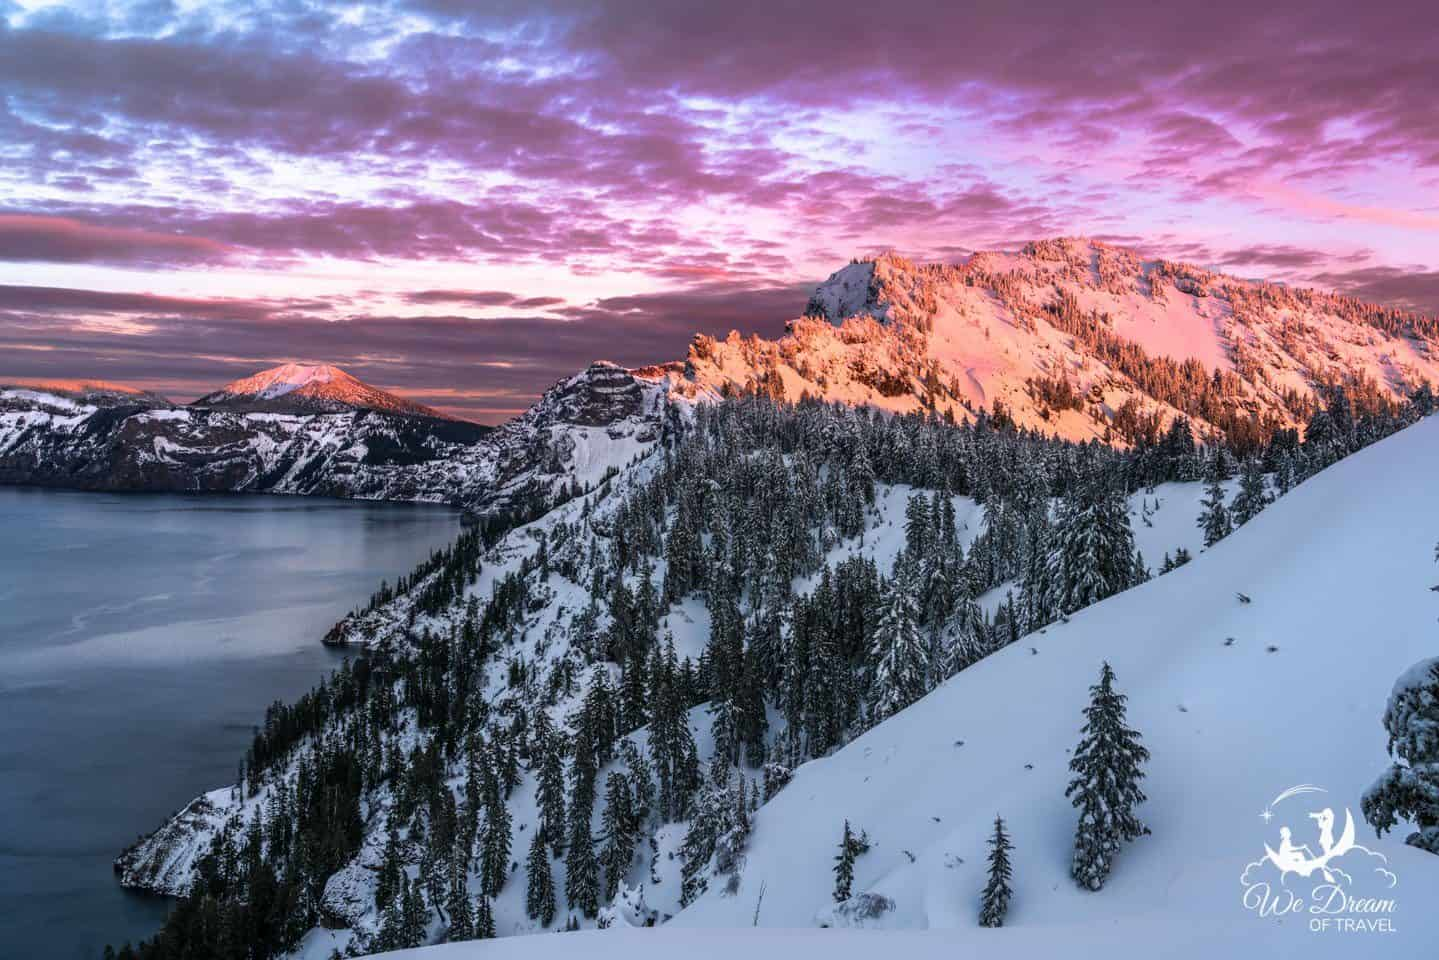 Crazy sunset on a visit to Crater Lake in ORegon